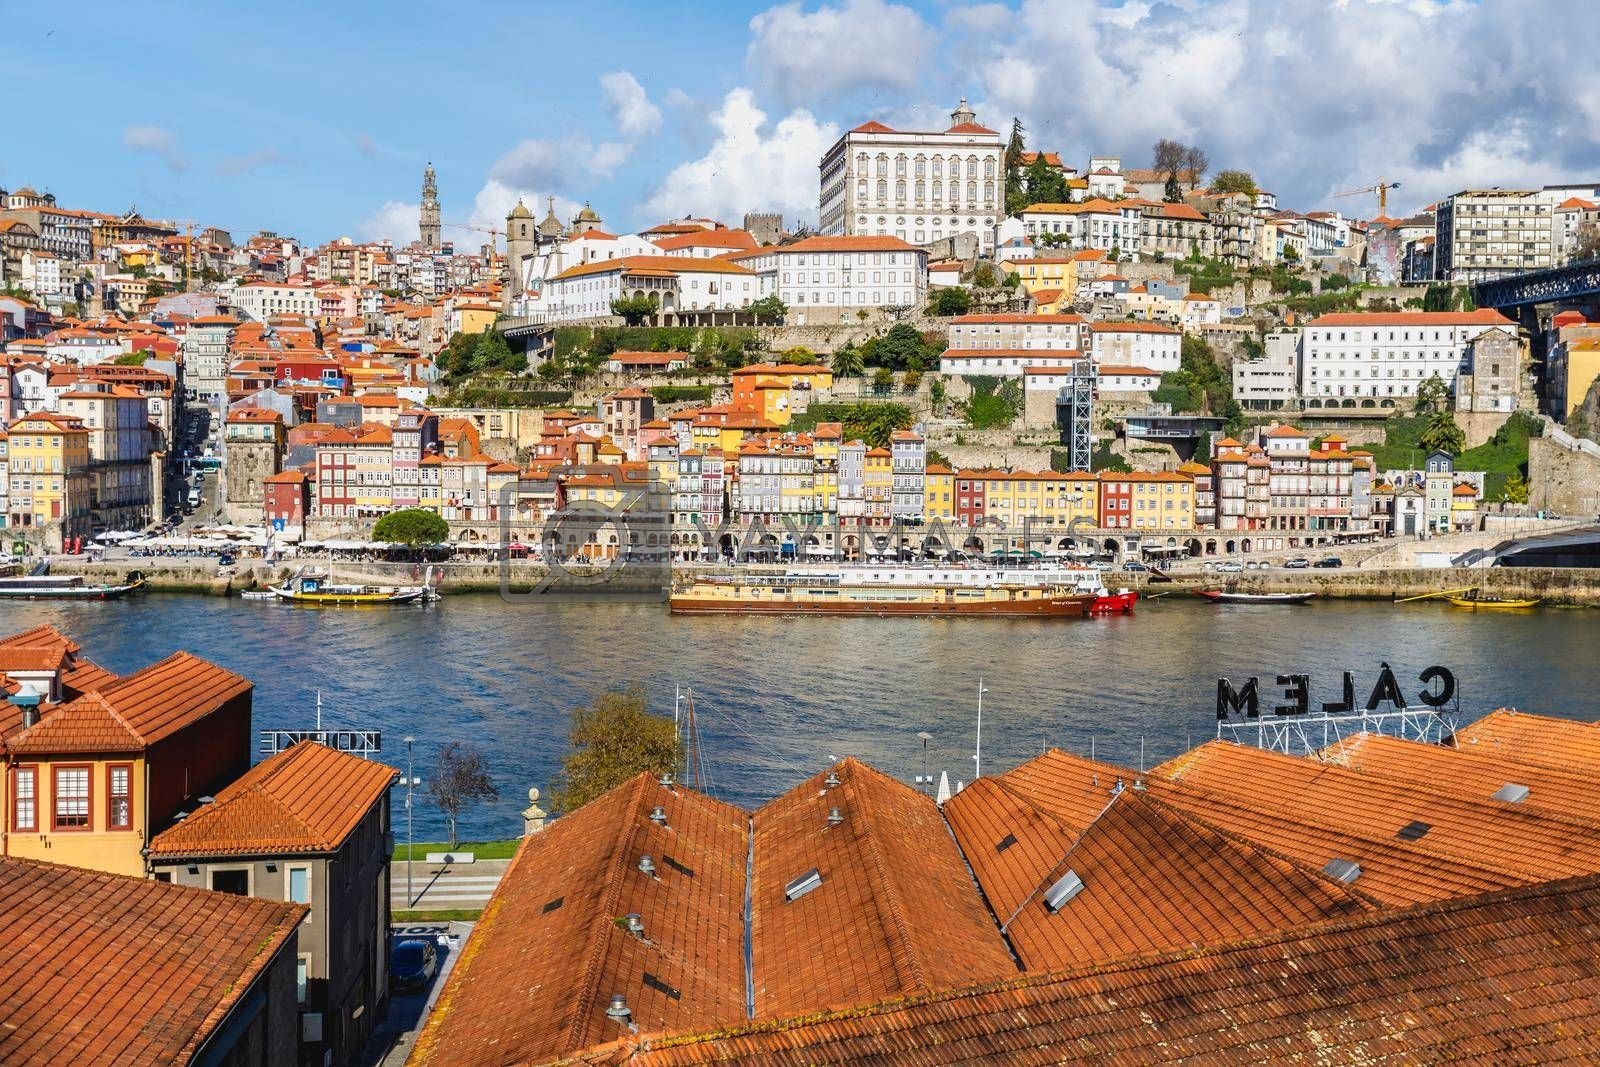 Porto, Portugal - October 23, 2020: View of the buildings with typical architecture and boats of tourist areas on the banks of the Douro river on an autumn day